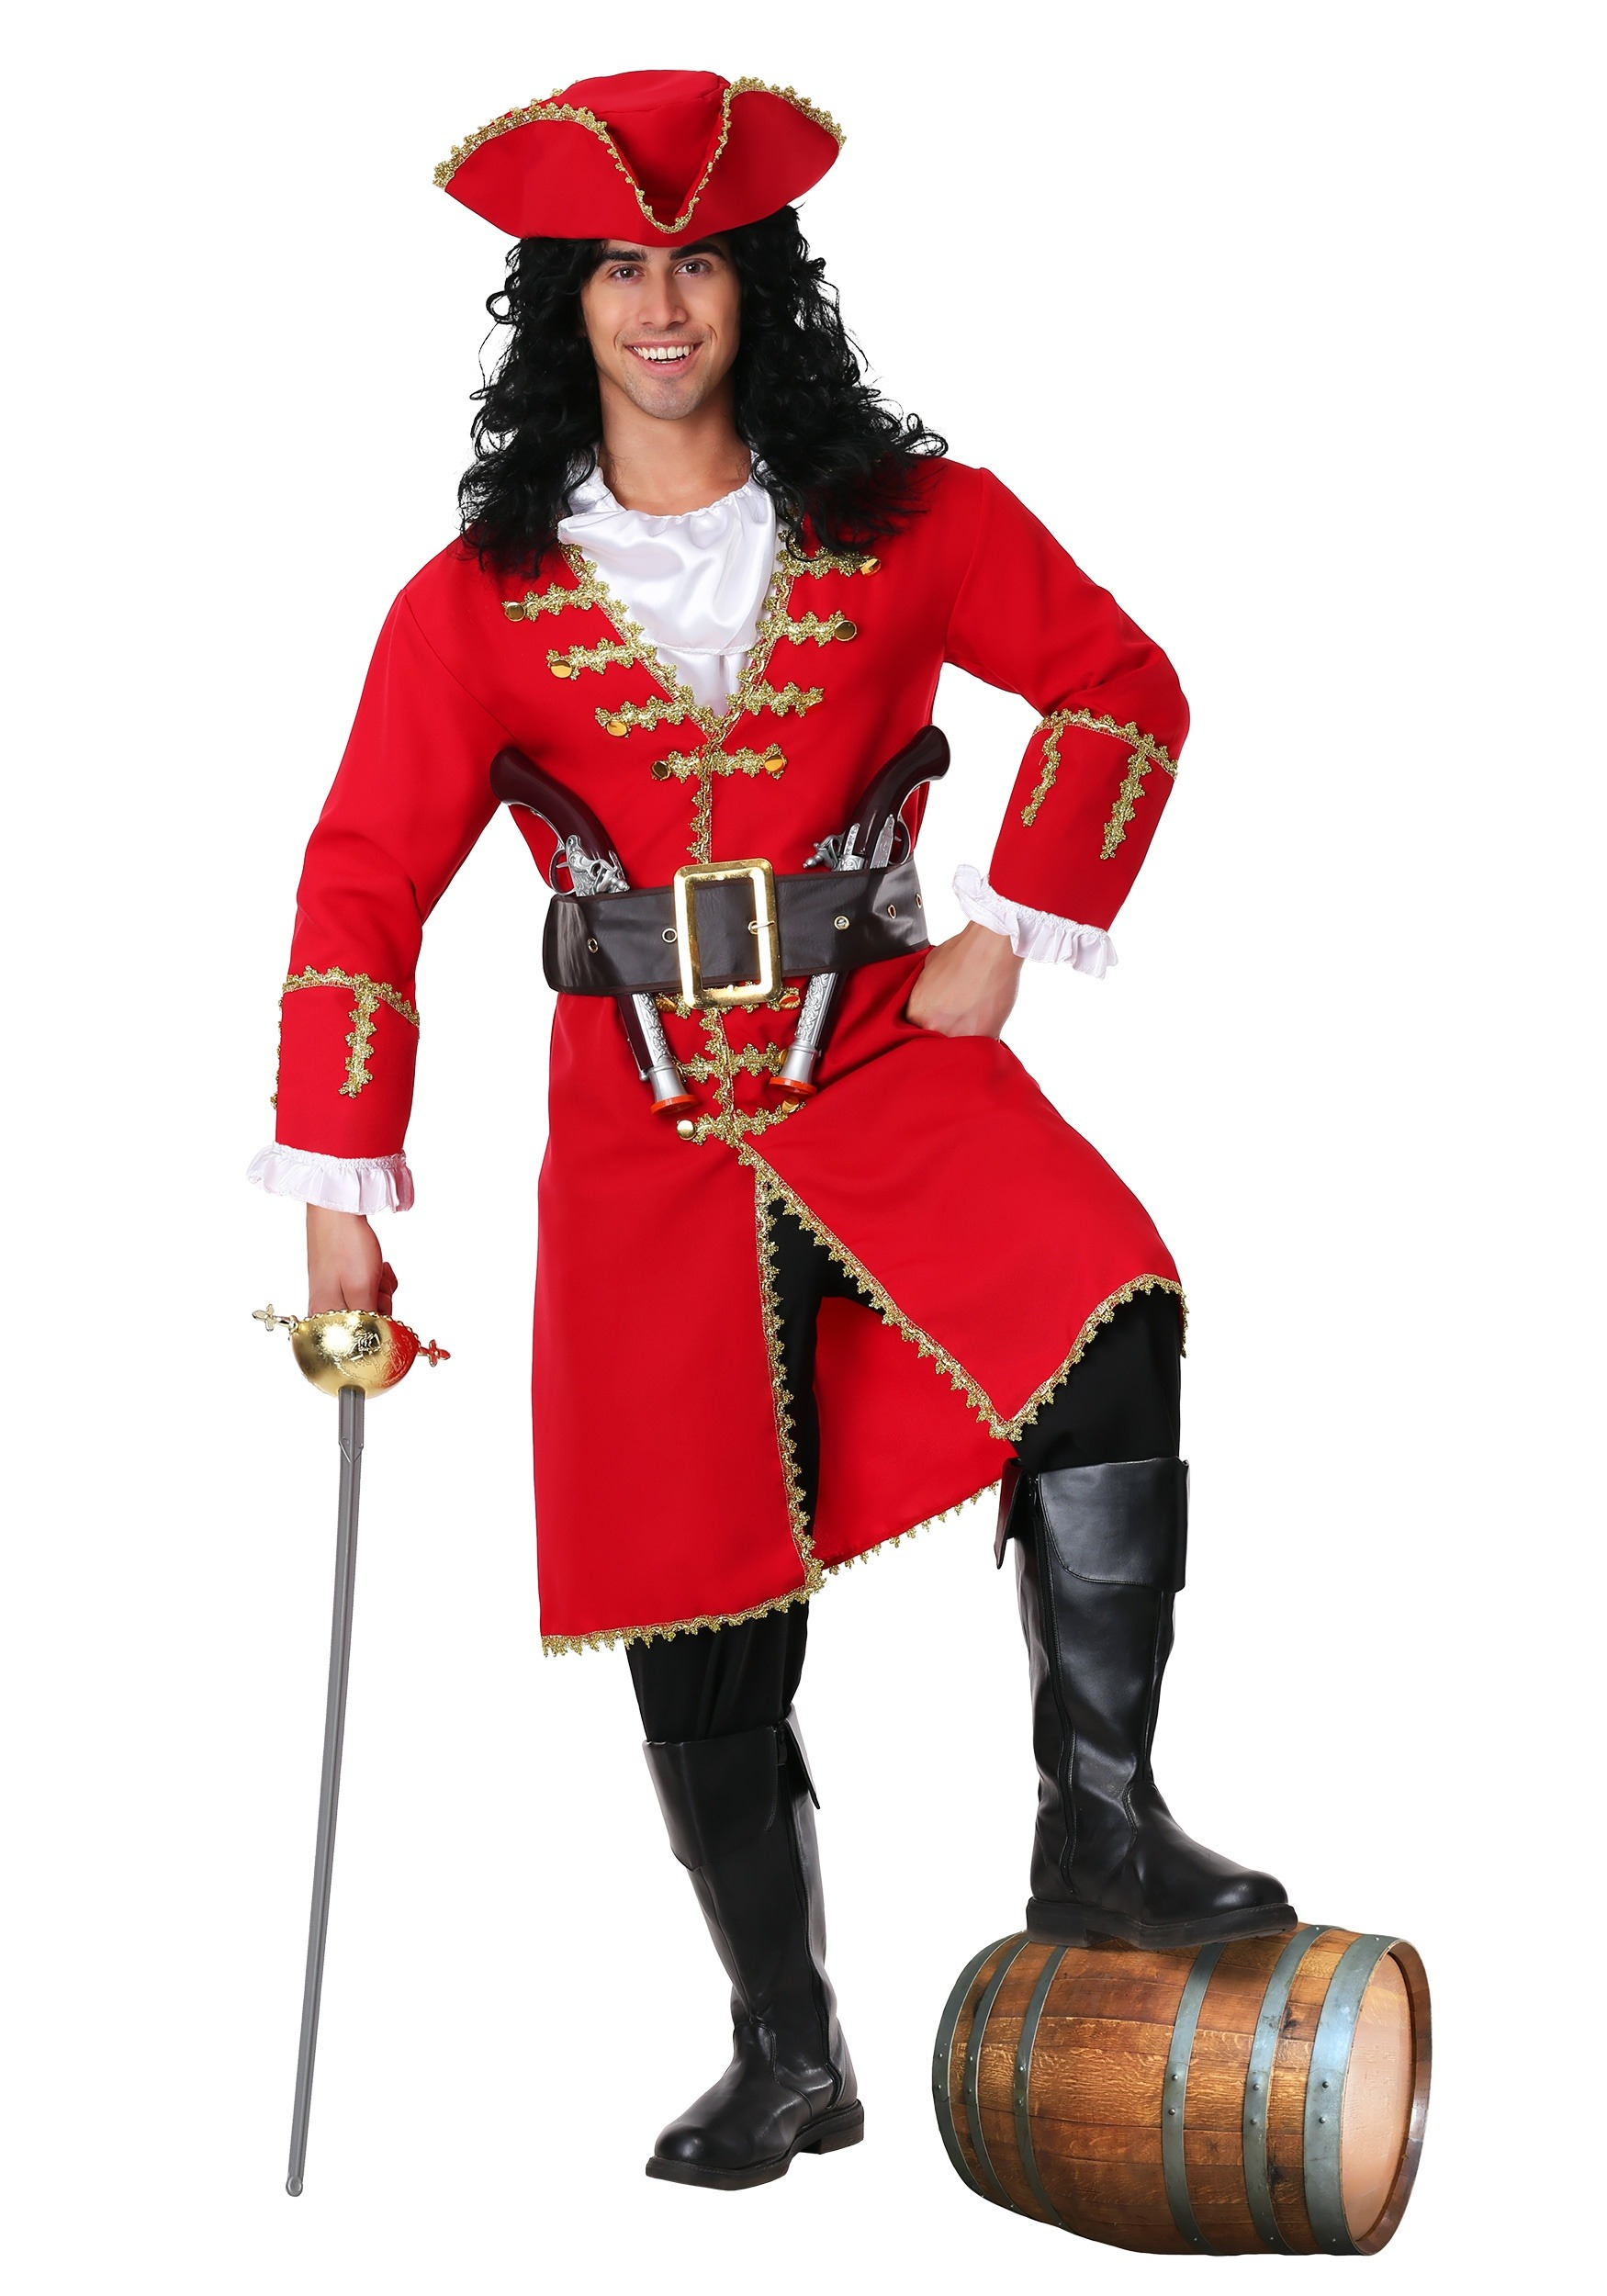 captain blackheart pirate costume. Black Bedroom Furniture Sets. Home Design Ideas